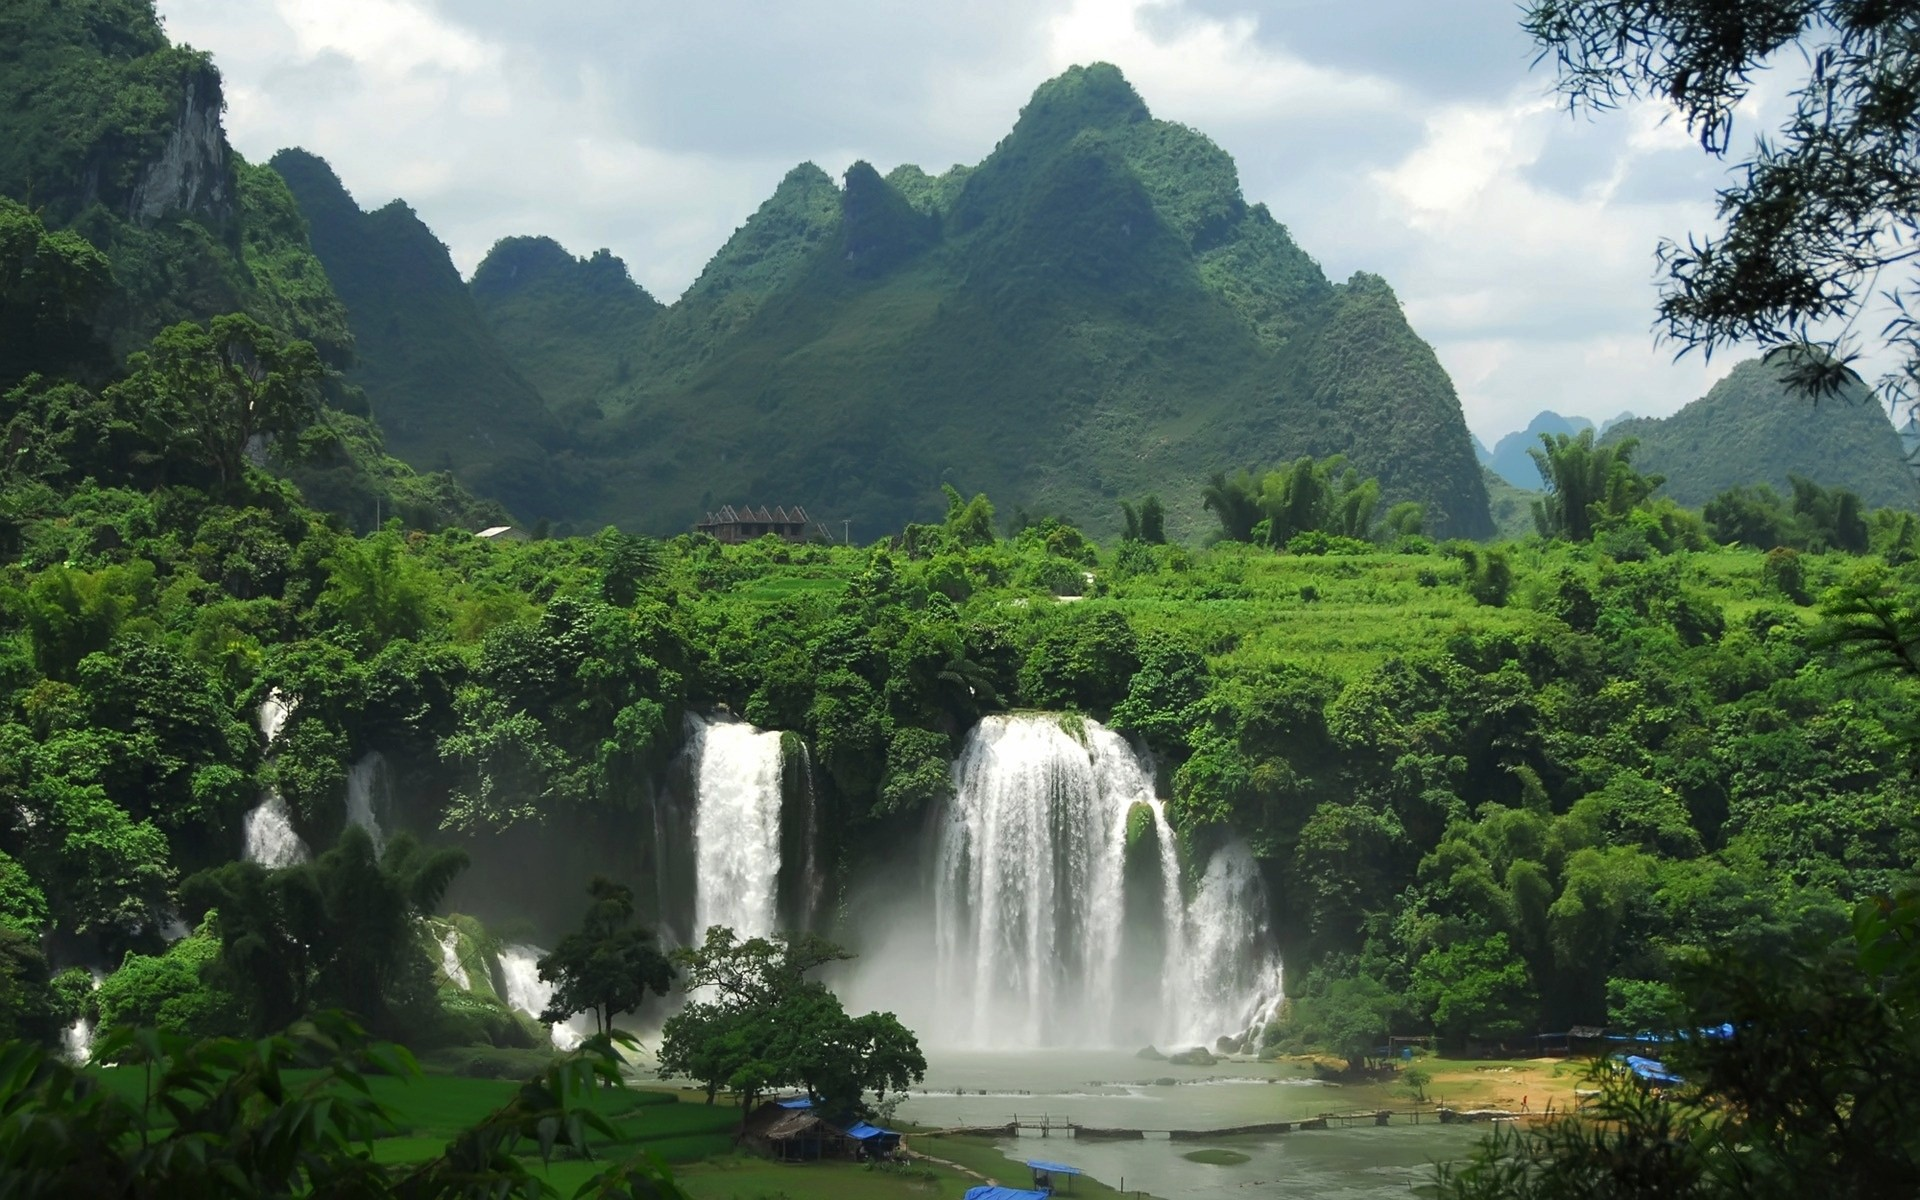 landscapes water waterfall travel nature wood outdoors tree mountain river landscape rock rainforest scenic summer tropical sky jungle cascade lush background